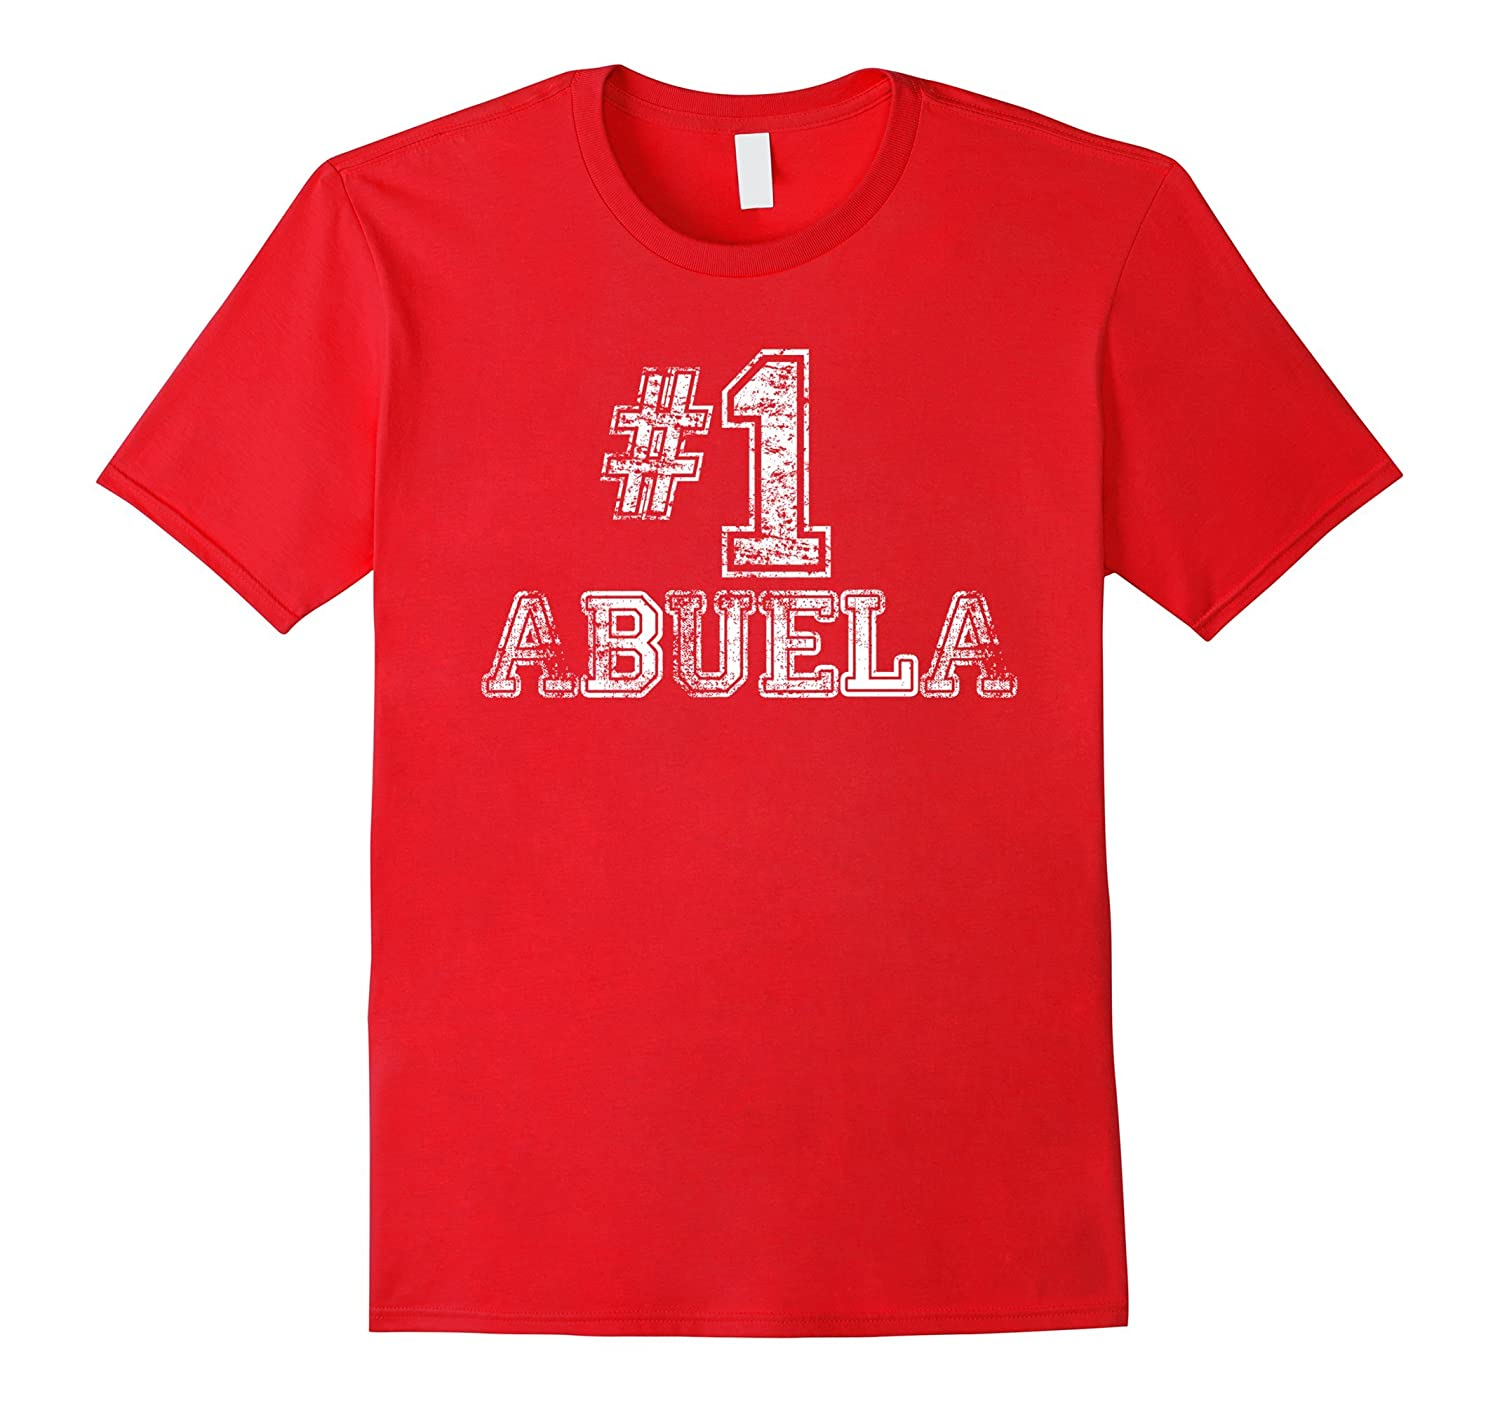 #1 Abuela T Shirt - Number One Grandmother Mother Gift Tee-BN